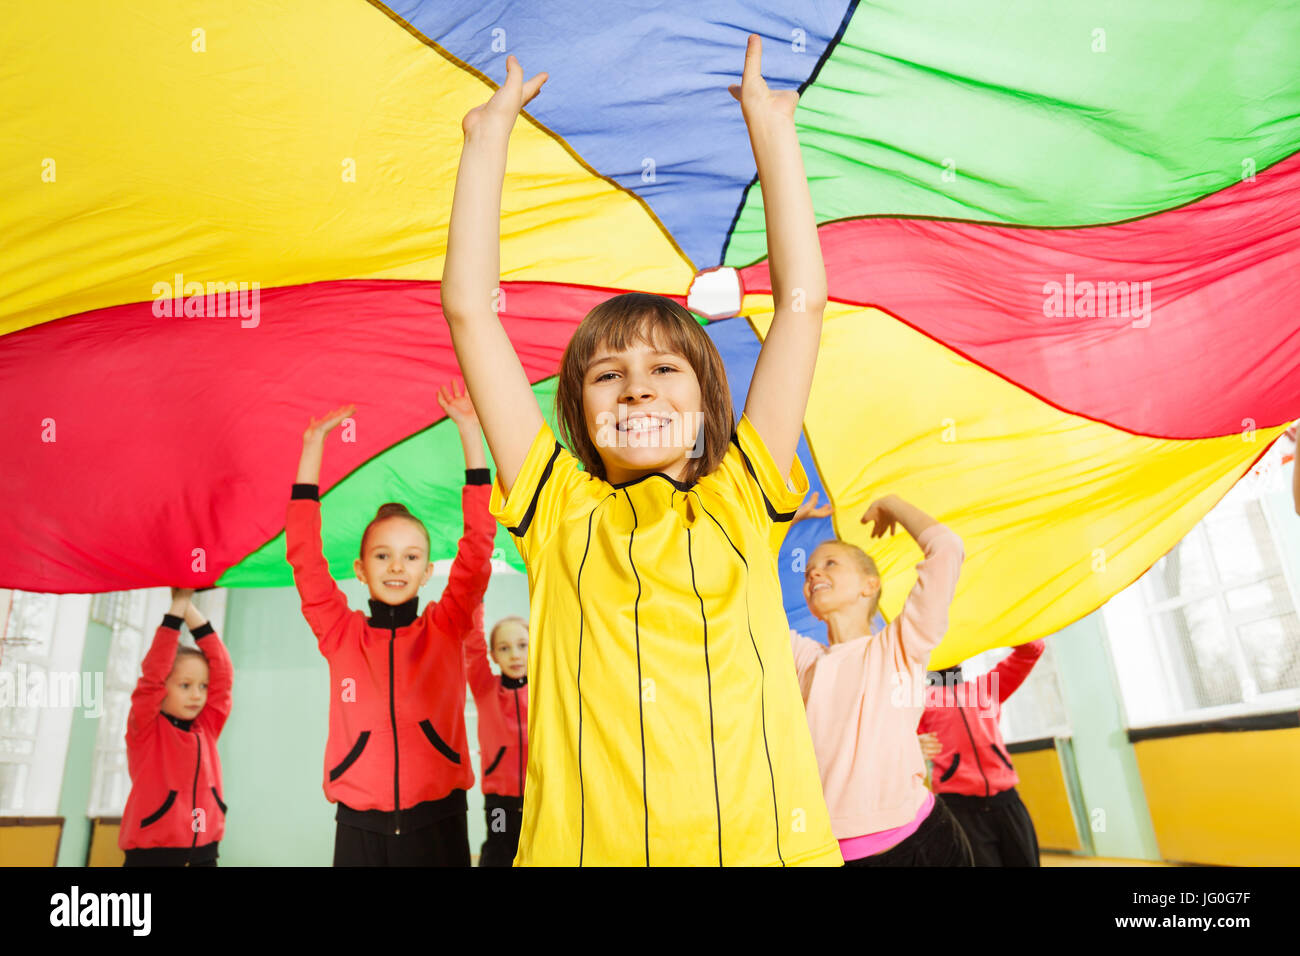 Portrait of smiling preteen boy standing under the canopy made of rainbow parachute with his hands up - Stock Image